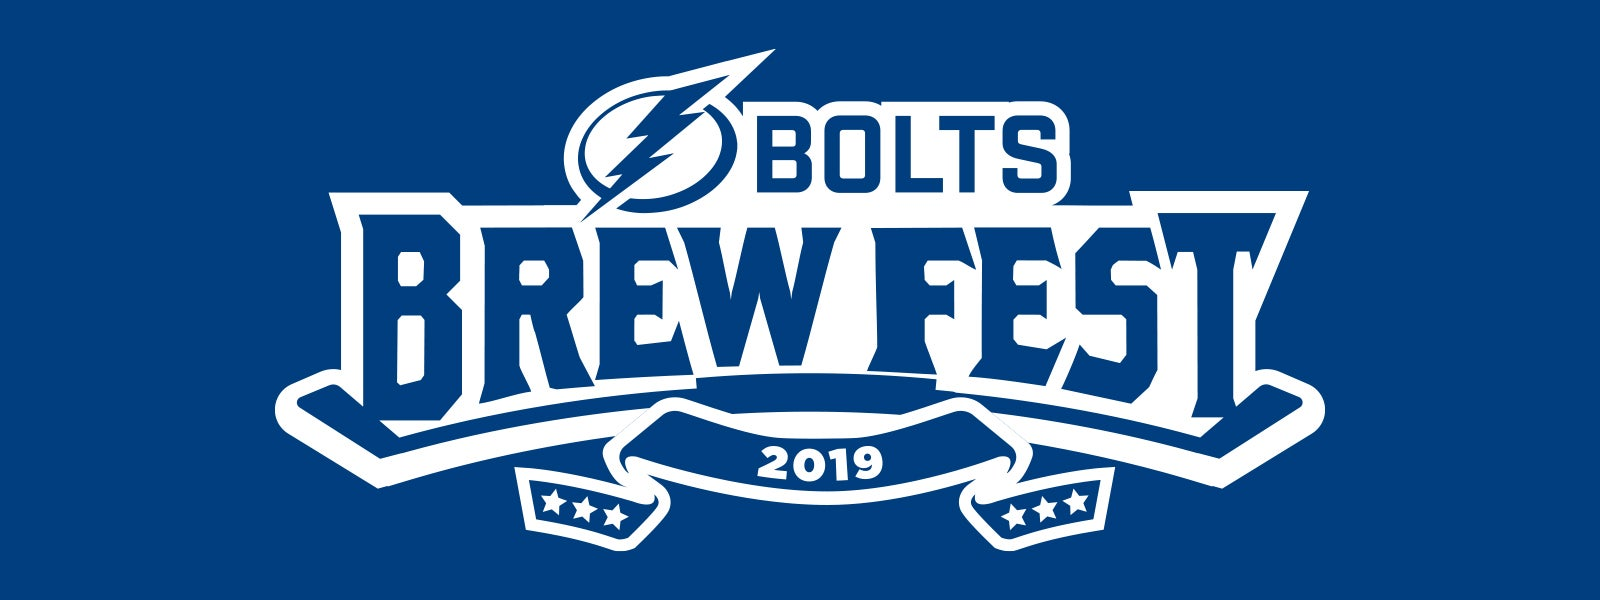 Bolts Brew Fest